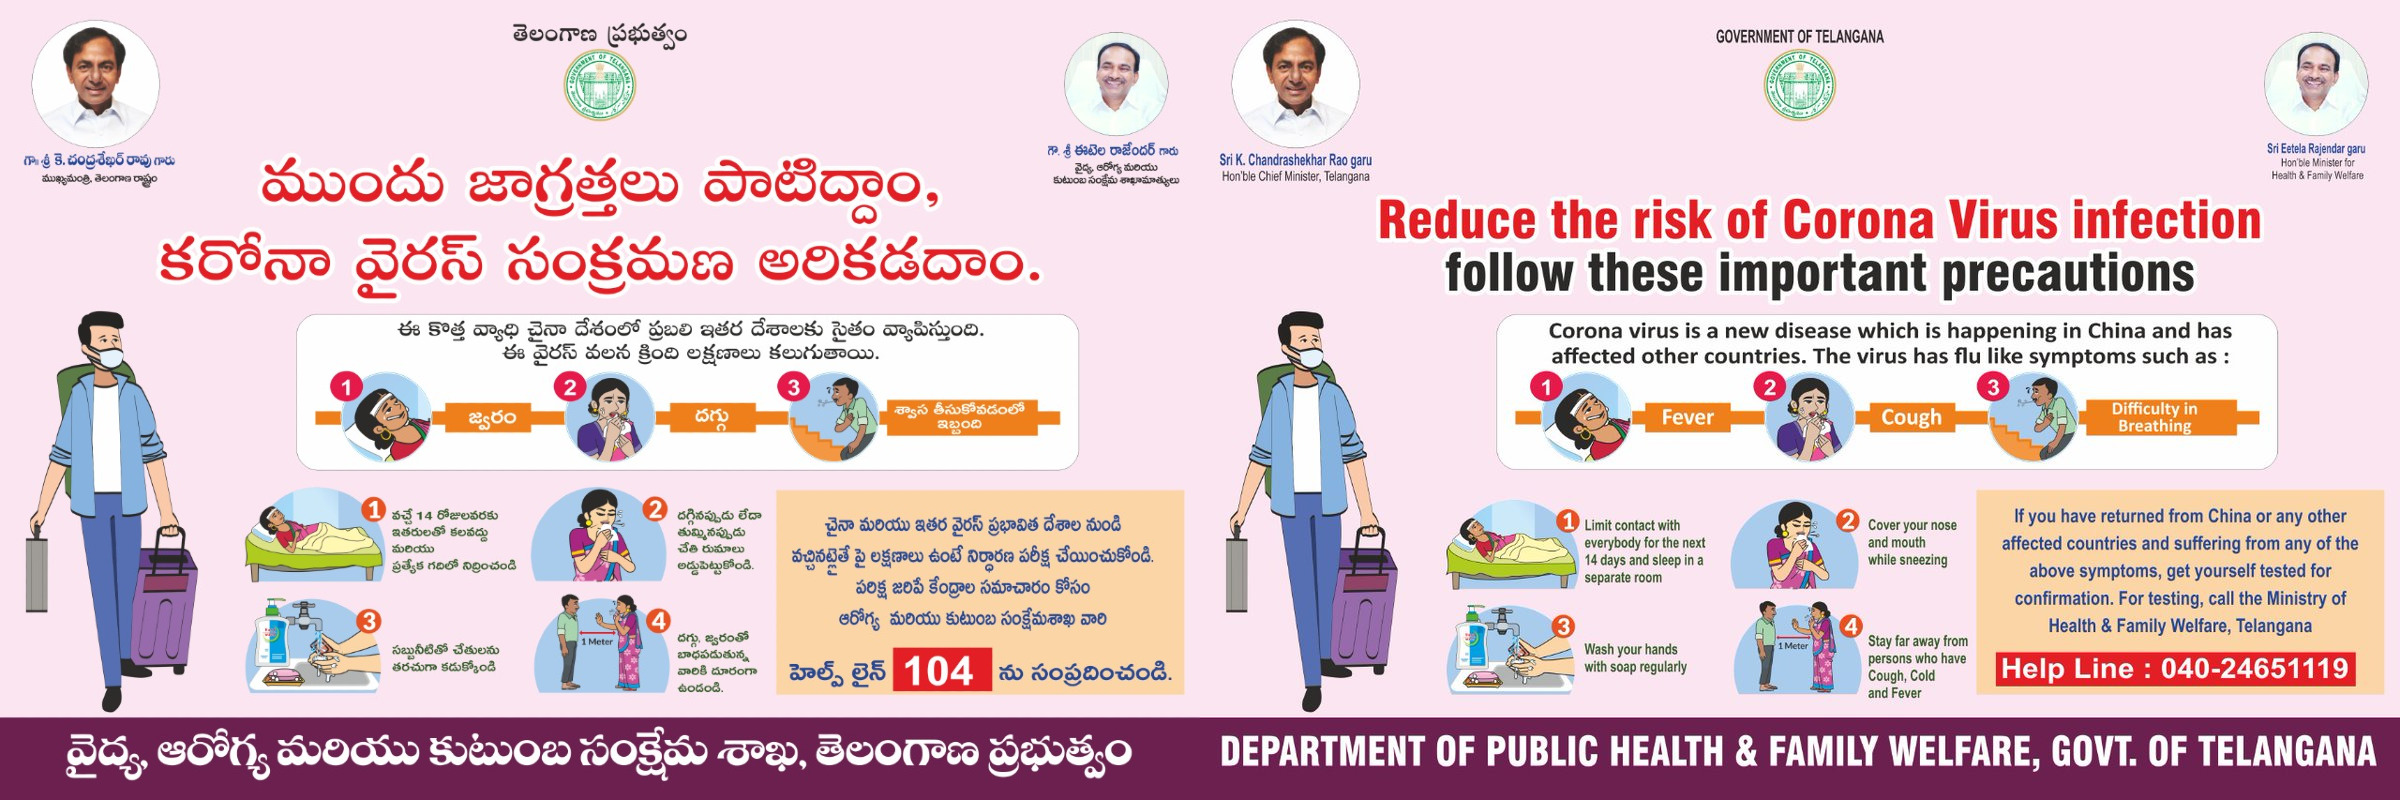 department of public health and family welfare Govt . Of Telangana